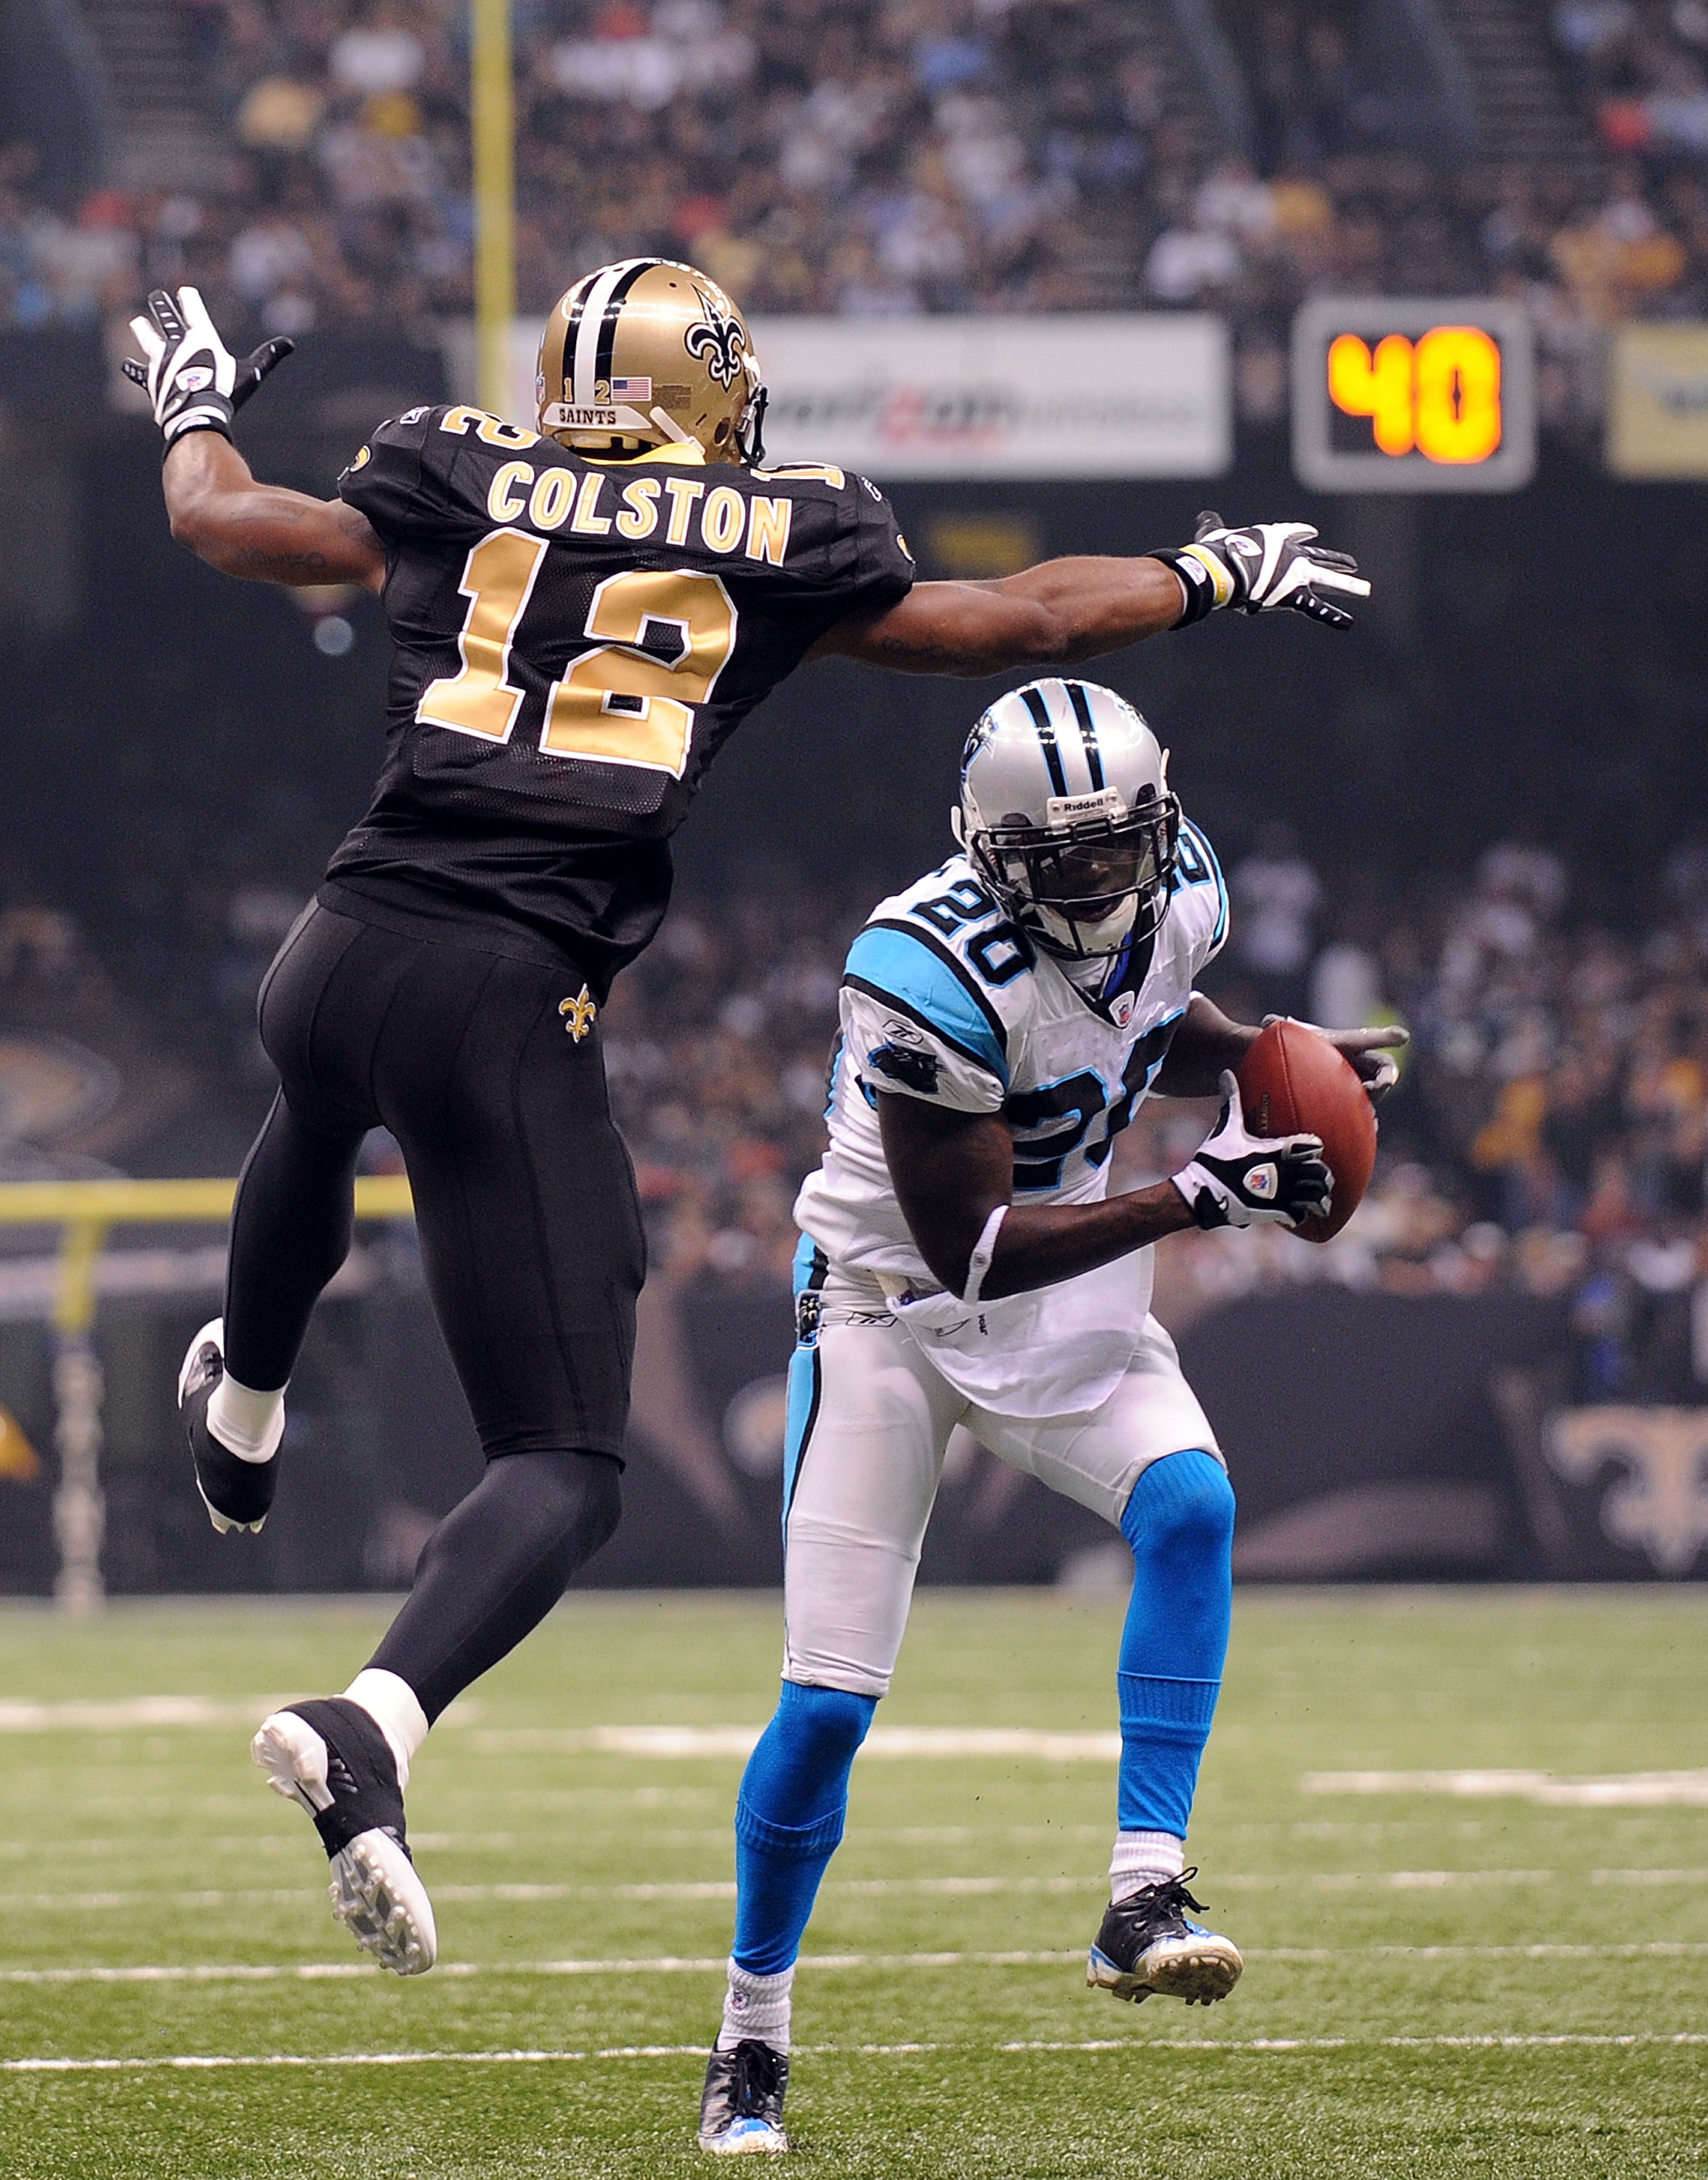 NEW ORLEANS - NOVEMBER 08:  Cornerback Chris Gamble #20 of the Carolina Panthers intercepts a pass intended for Marques Colston #12 of the New Orleans Saints at Louisiana Superdome on November 8, 2009 in New Orleans, Louisiana.  (Photo by Ronald Martinez/